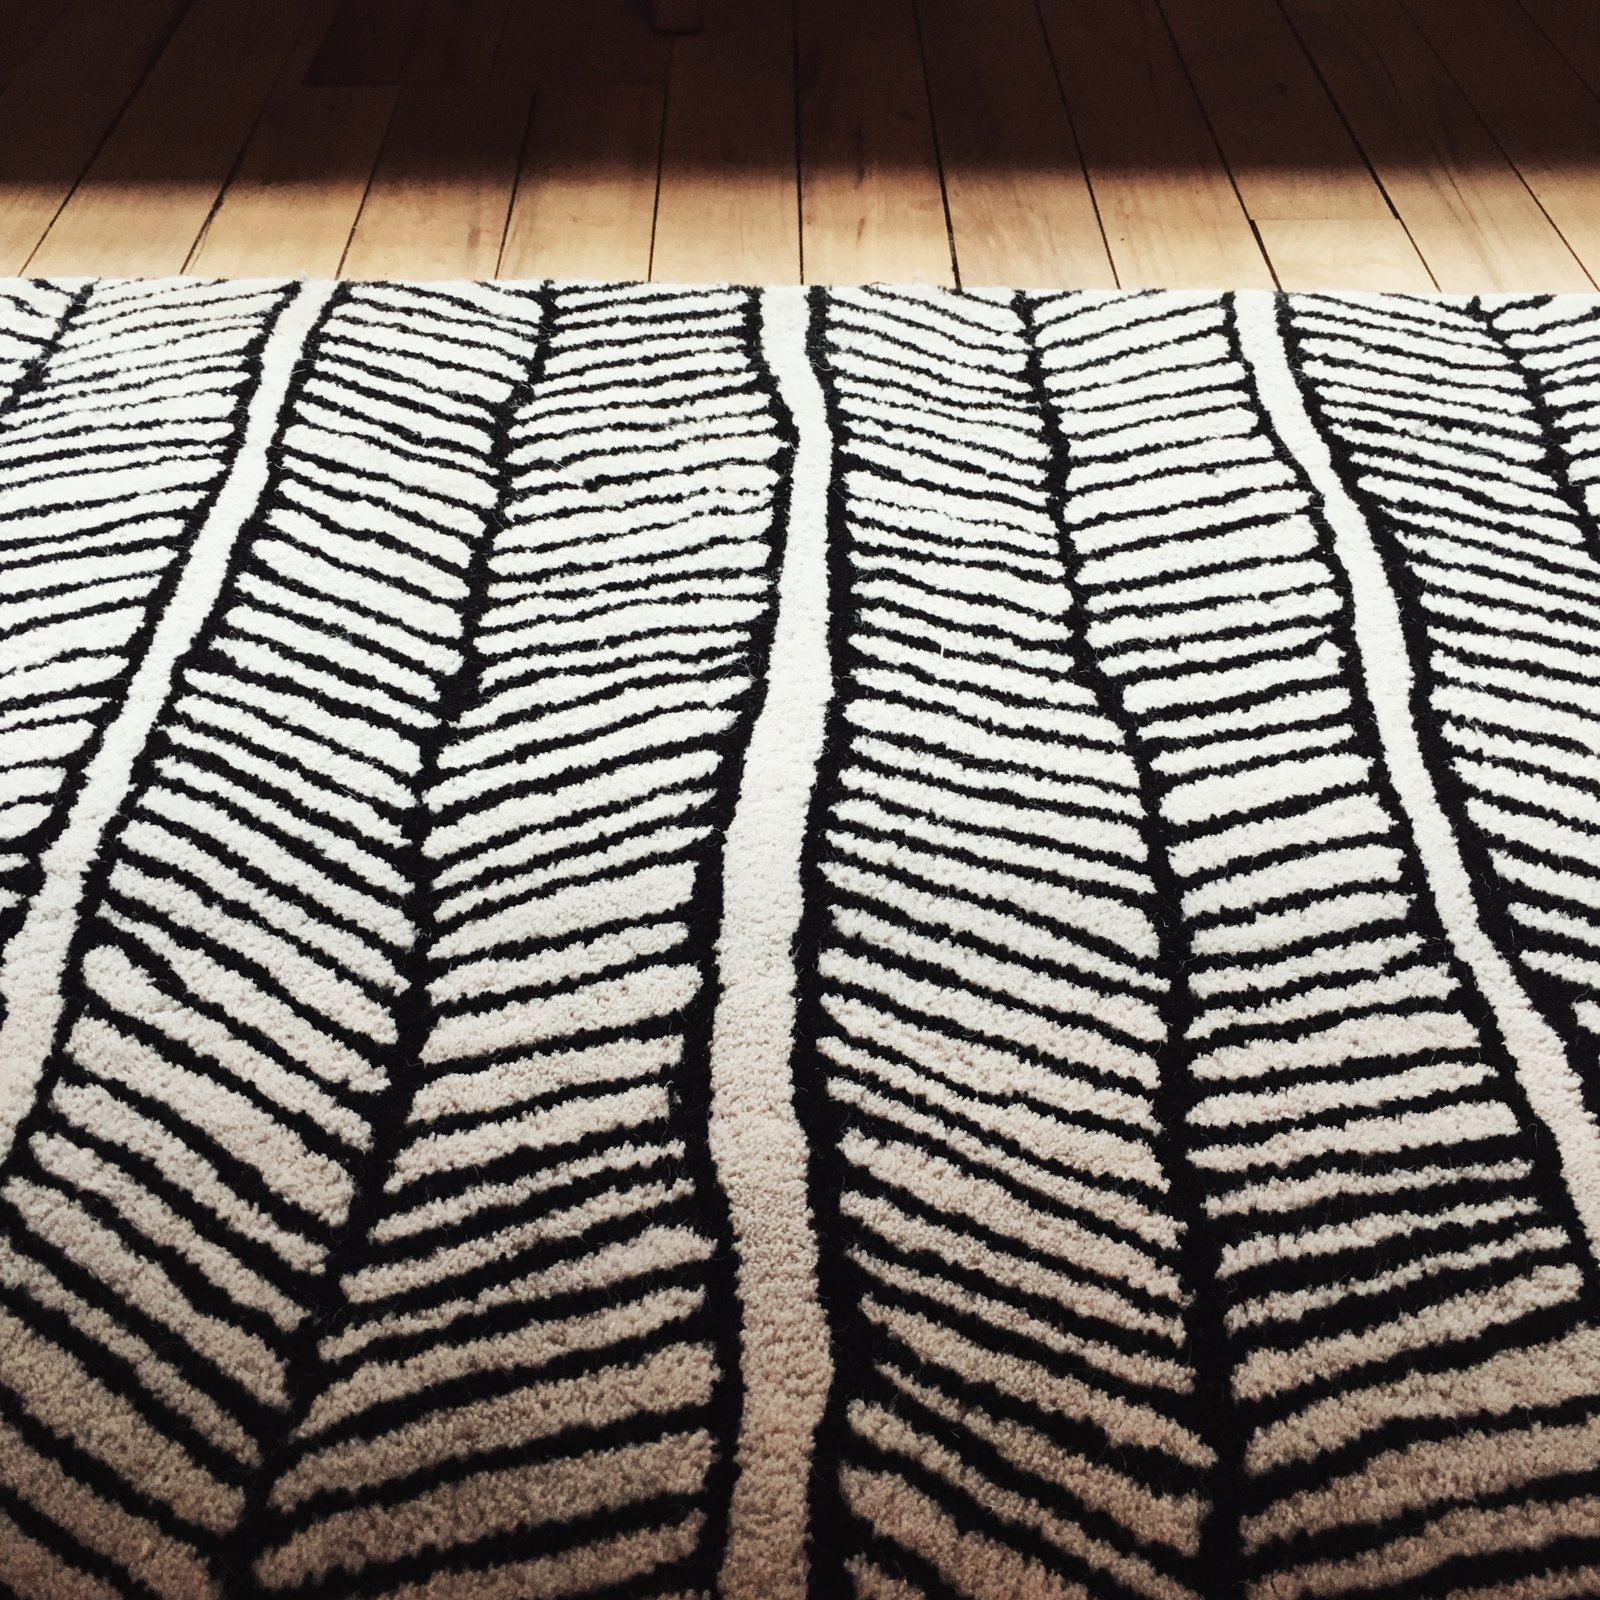 Black and white area rug creates beautiful texture and offsets the warmth of reclaimed wood flooring.  Schoolhouse Electric by J---S